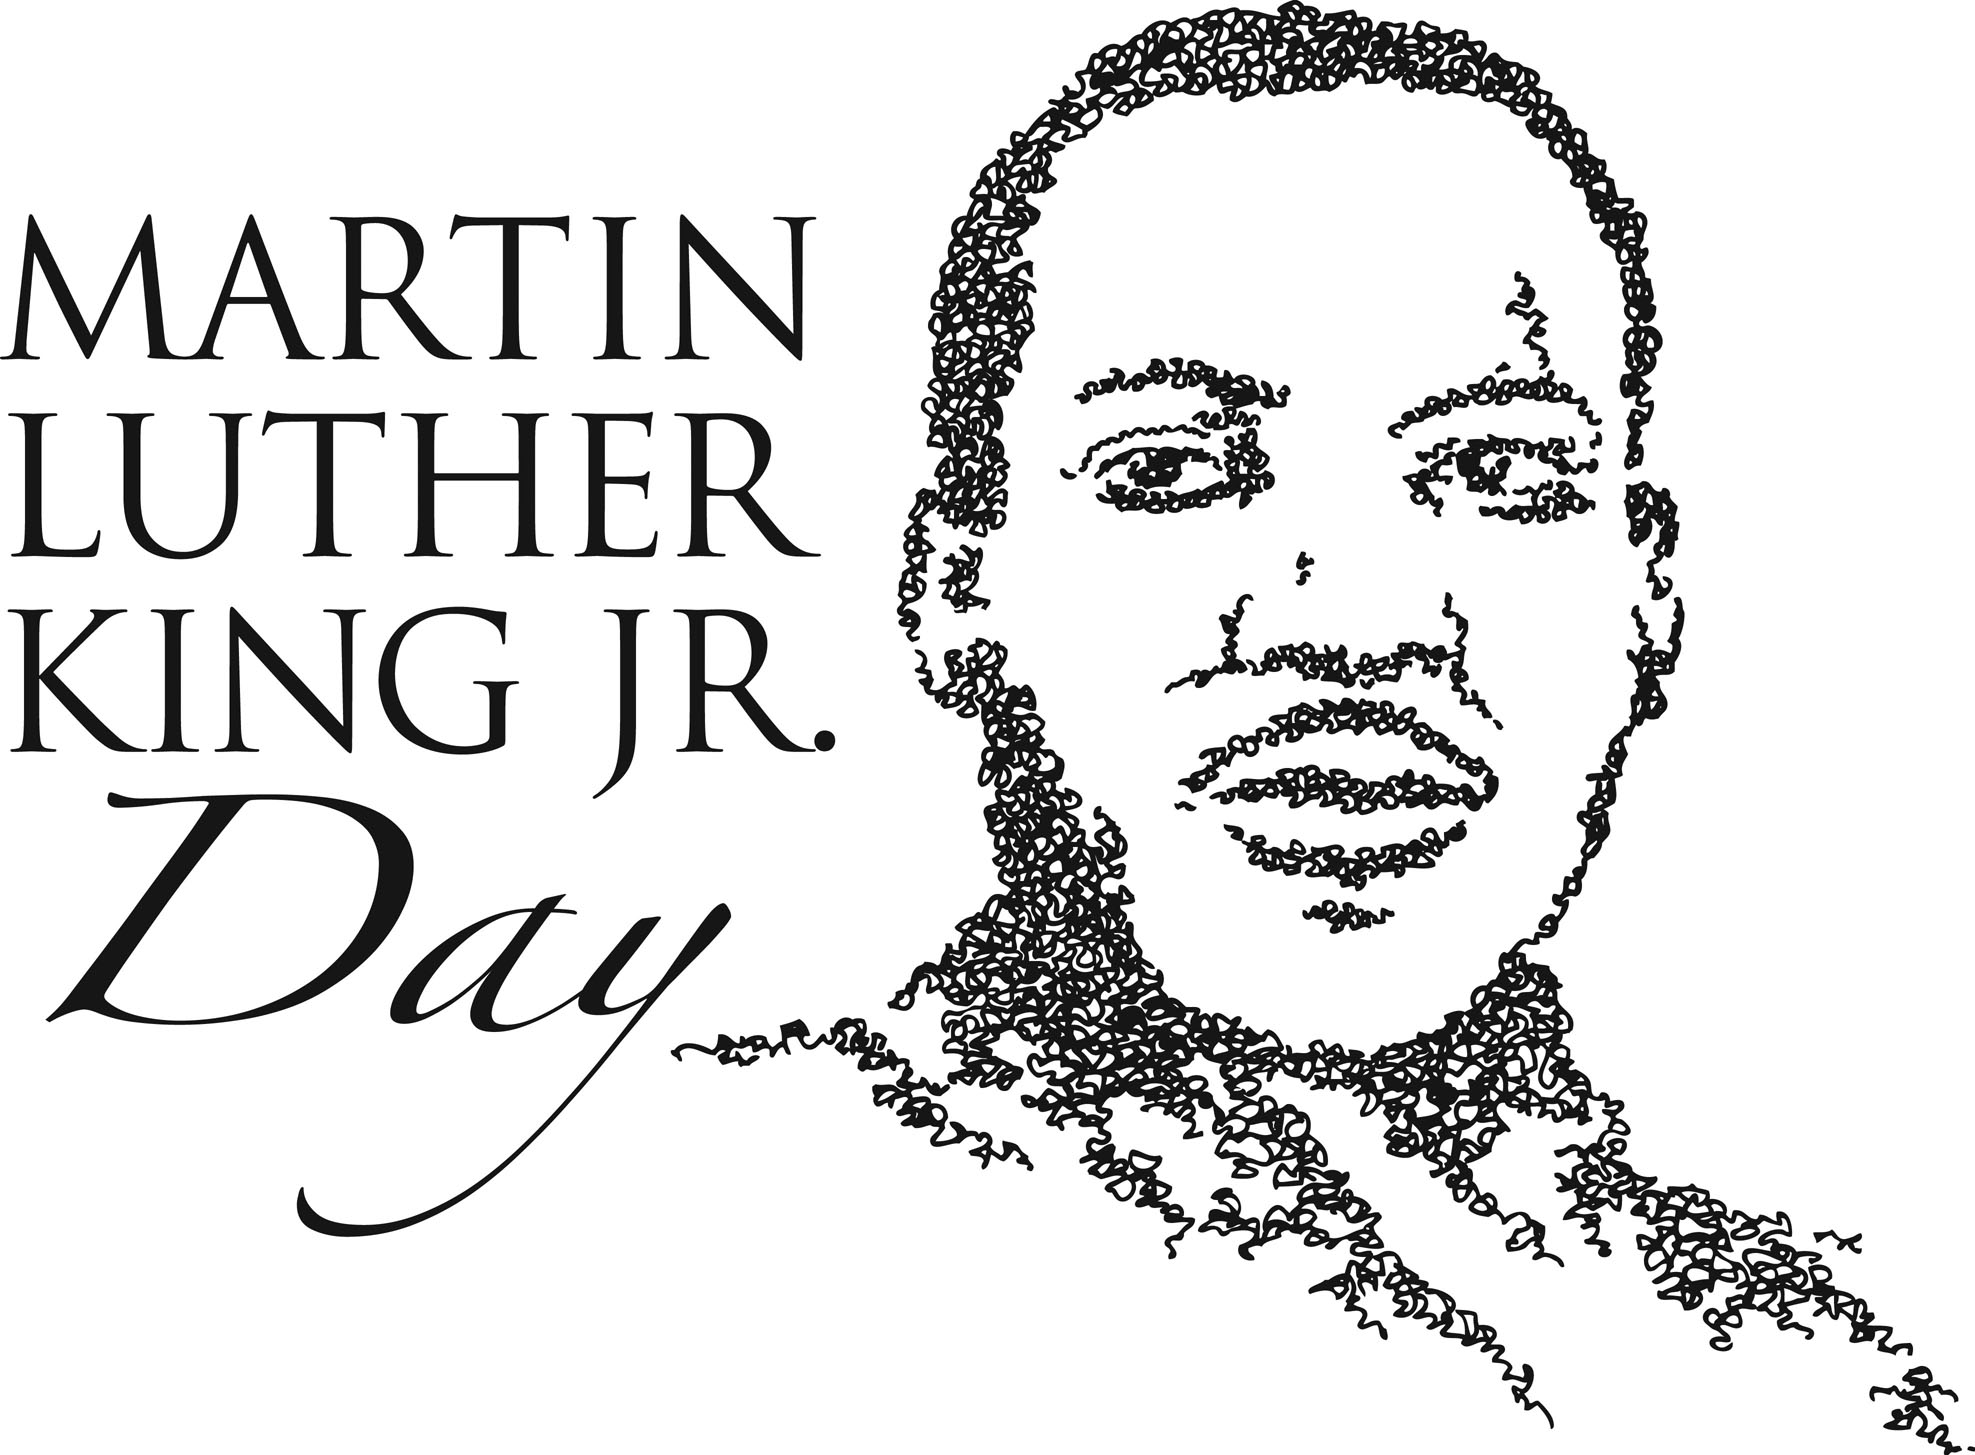 Martin luther king day clipart images - ClipartFest